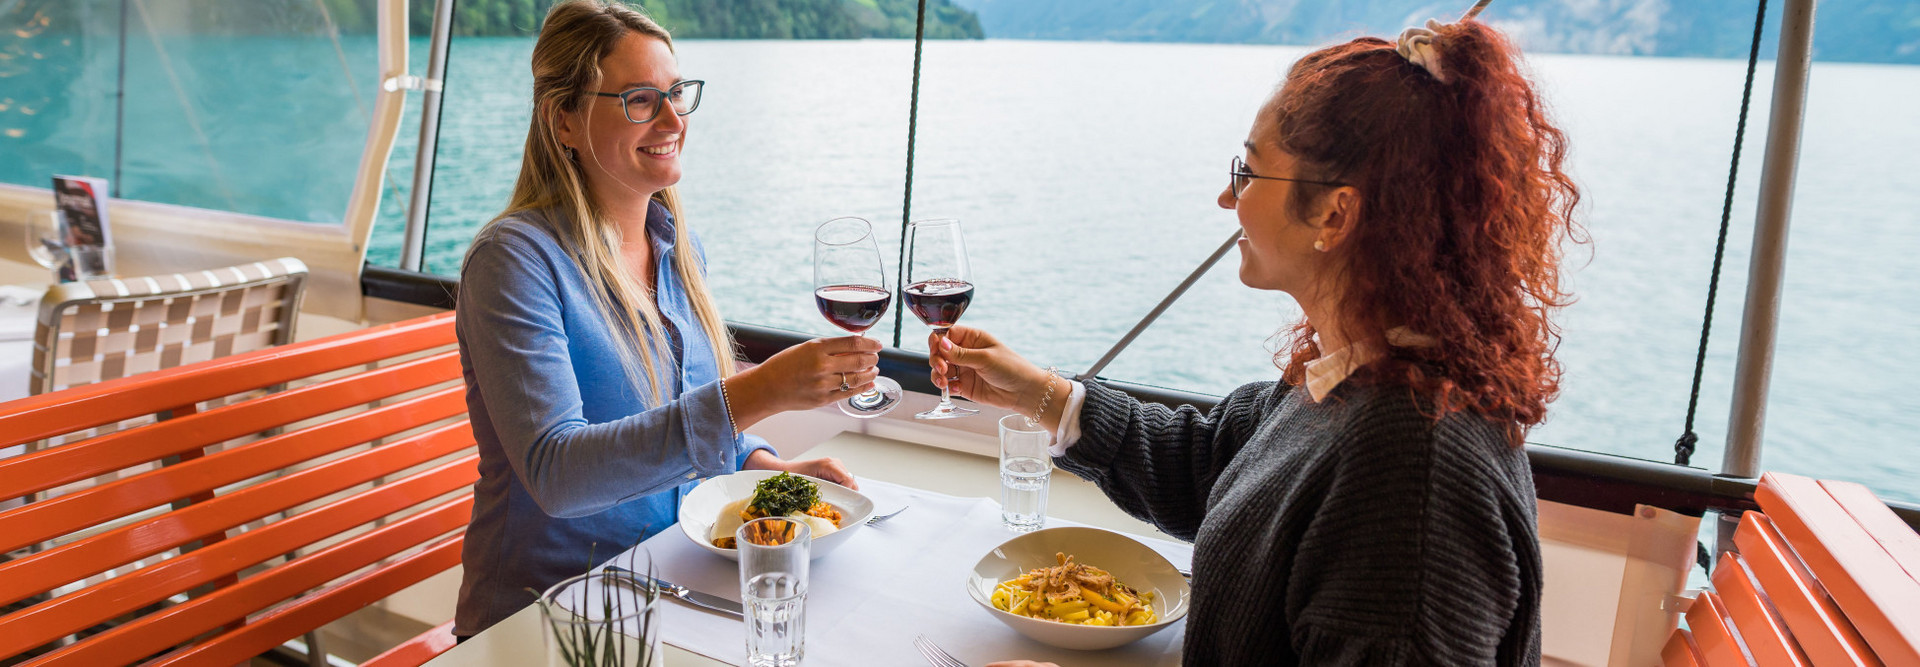 Two young women enjoy the gastronomic offer on the ship and toast with a glass of red wine.